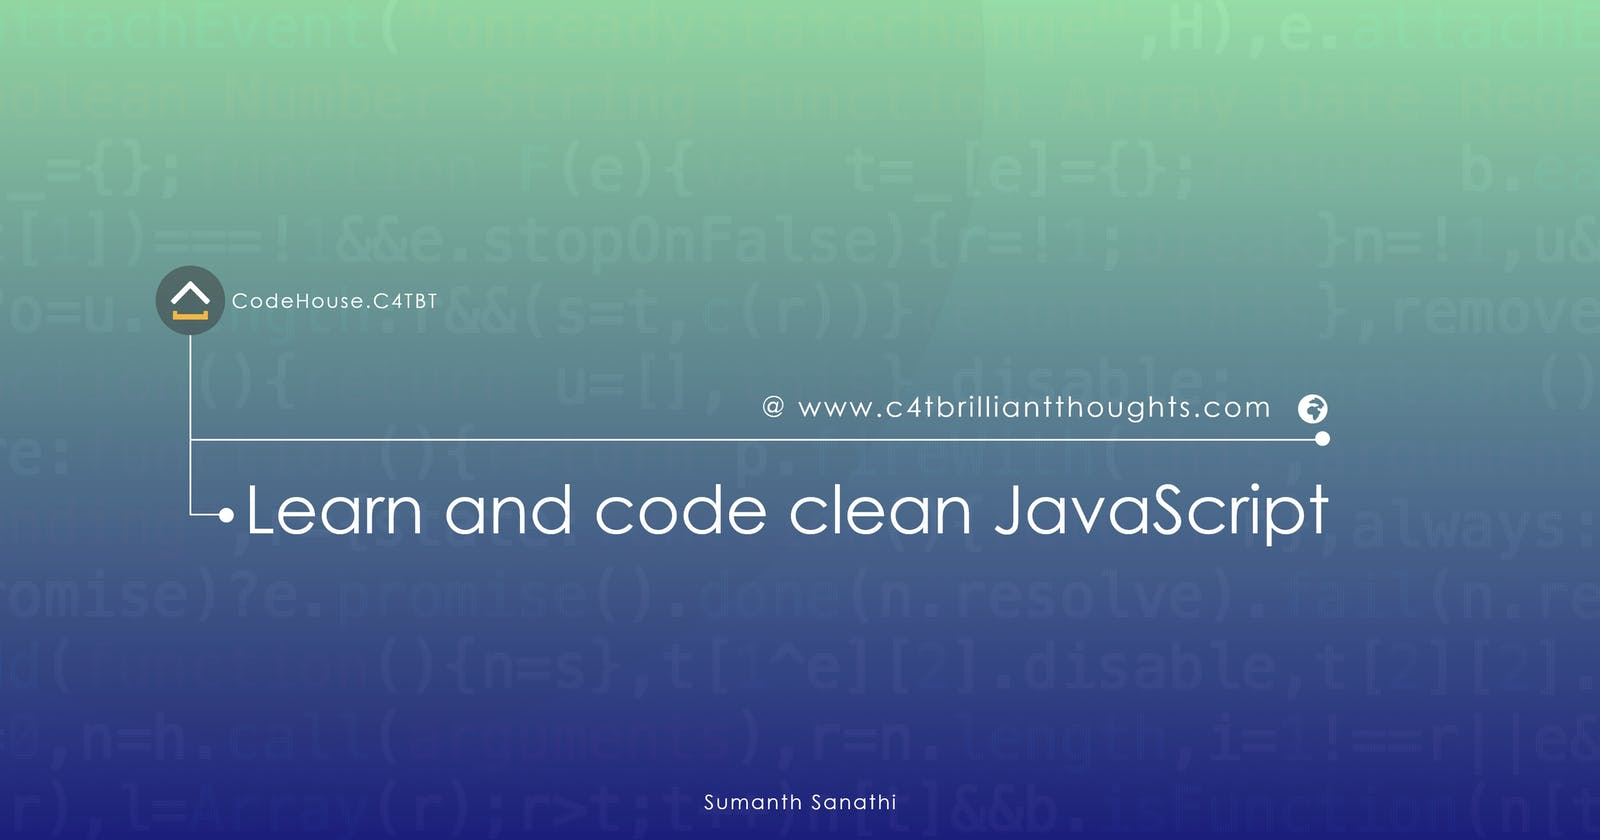 Learn and code clean JavaScript